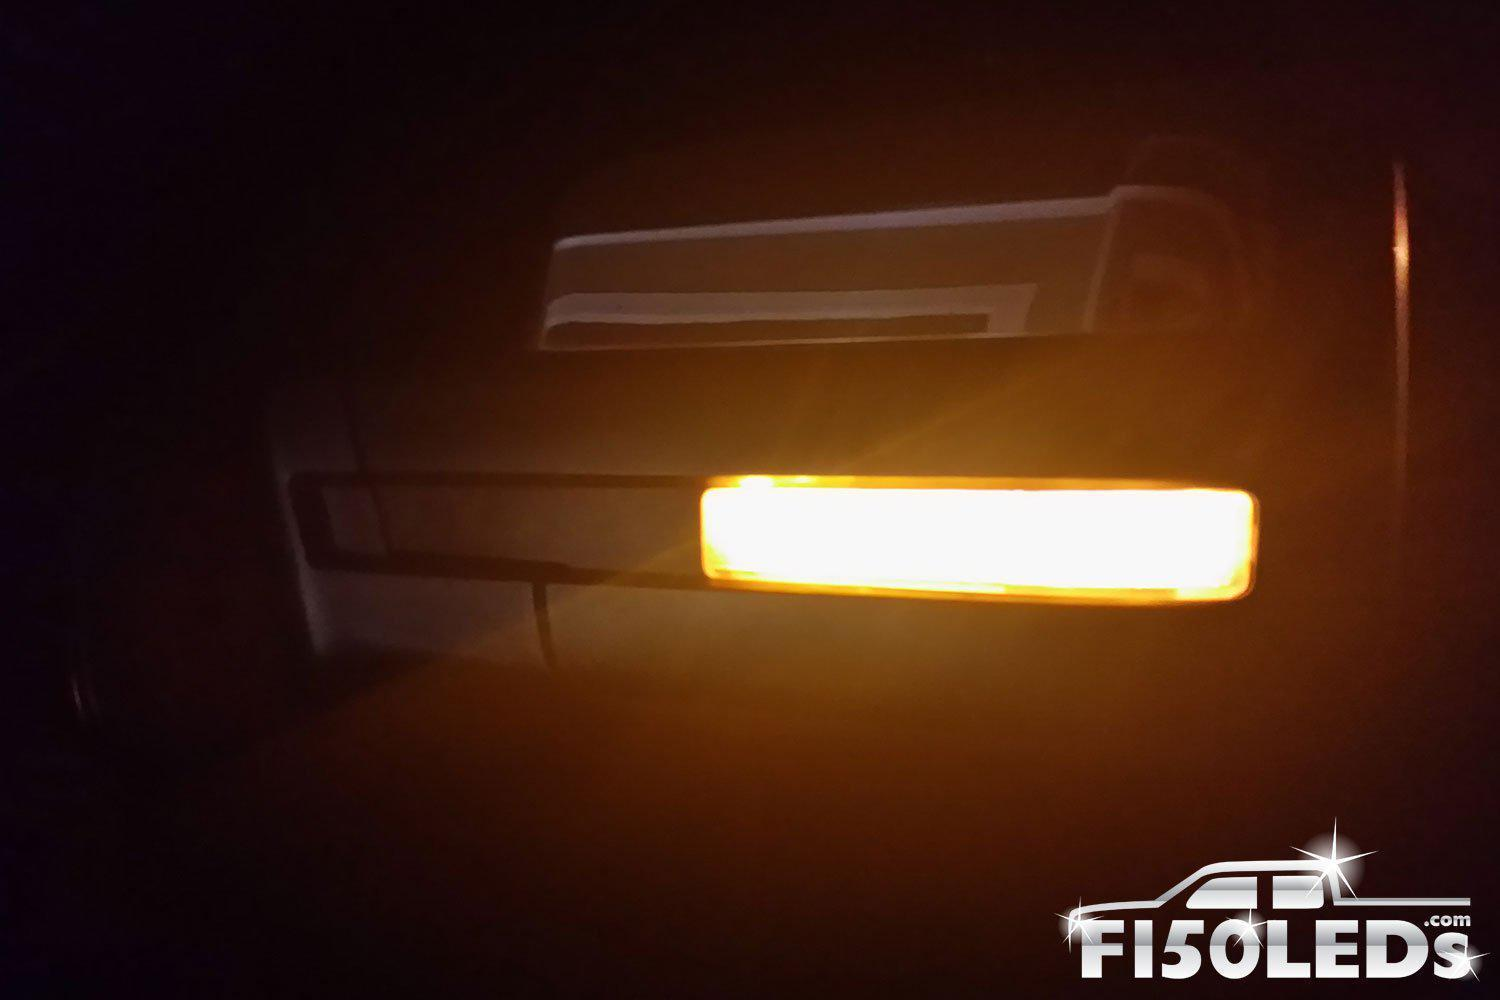 2010-14 F150 RAPTOR LED Mirror Running Light Kit-2010-14 F150 RAPTOR LEDS-F150LEDs.com